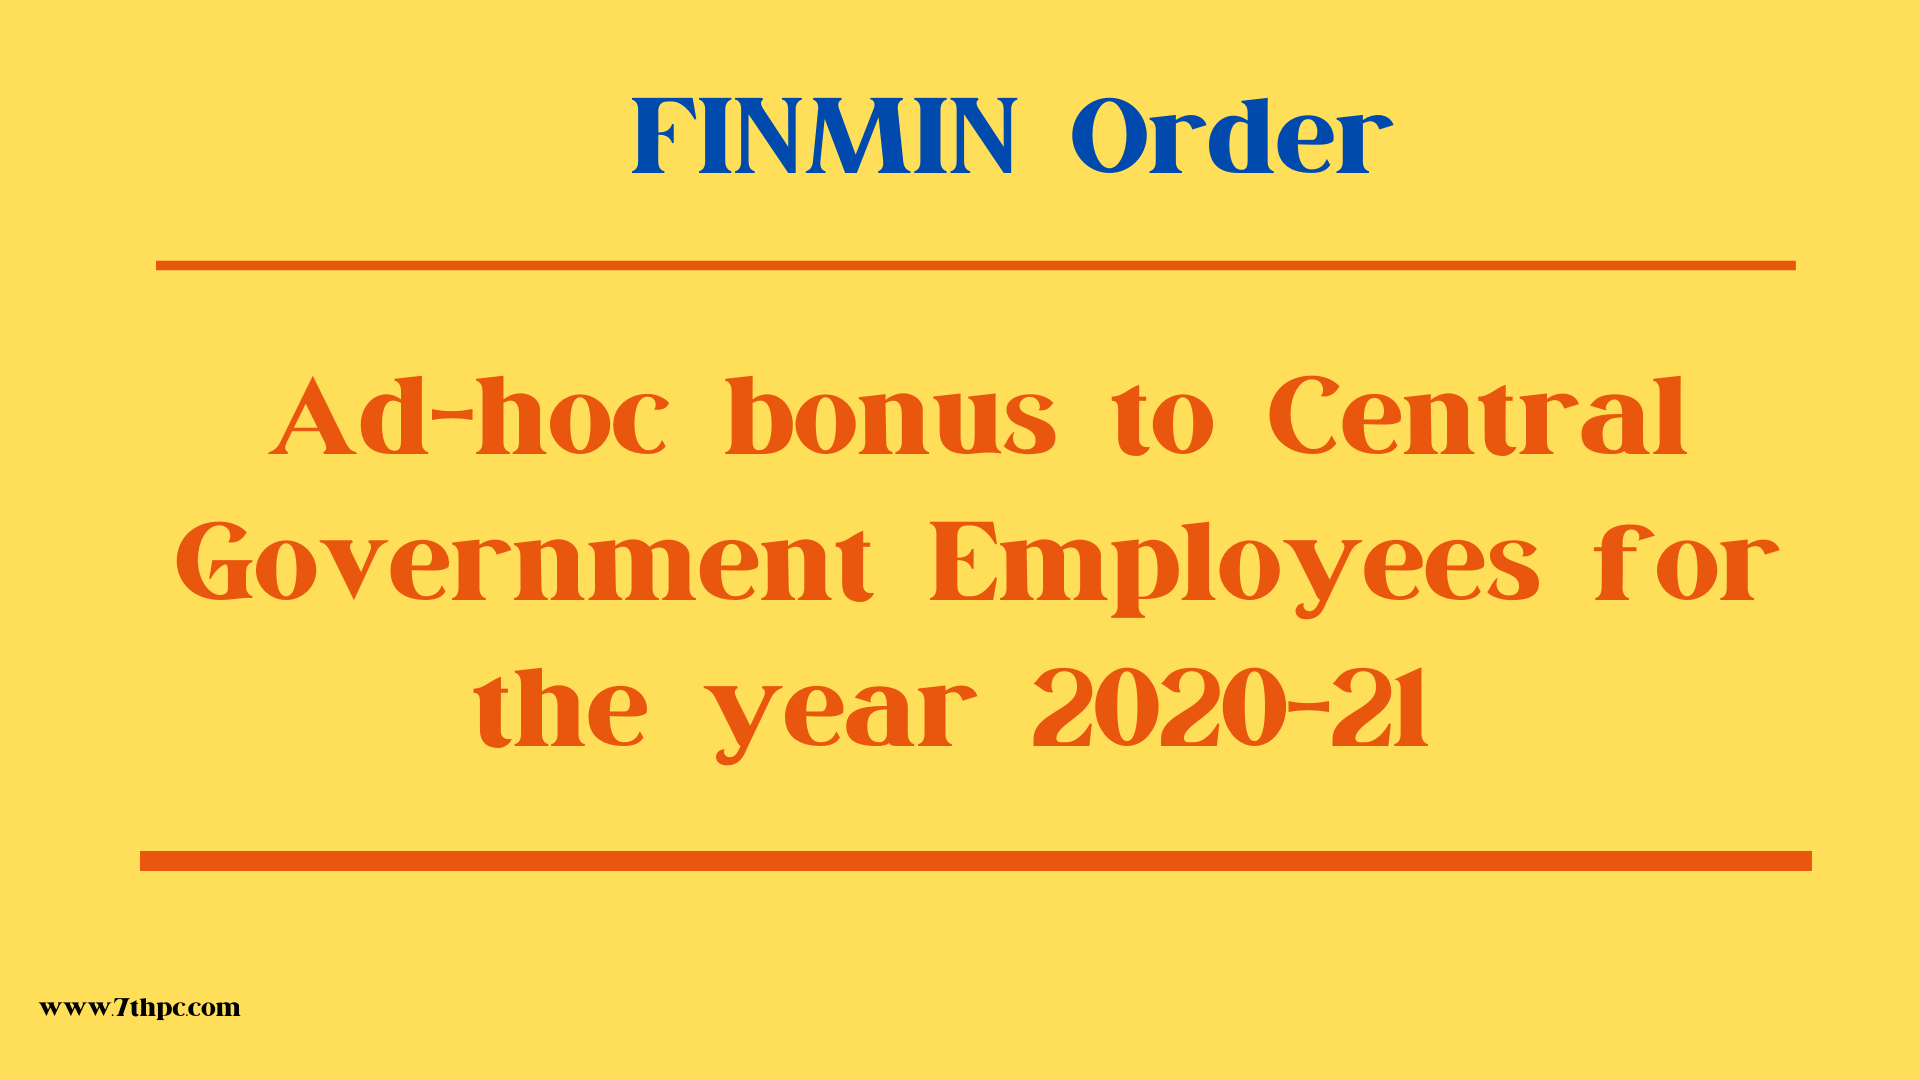 Ad-hoc bonus to Central Government Employees for the year 2020-21